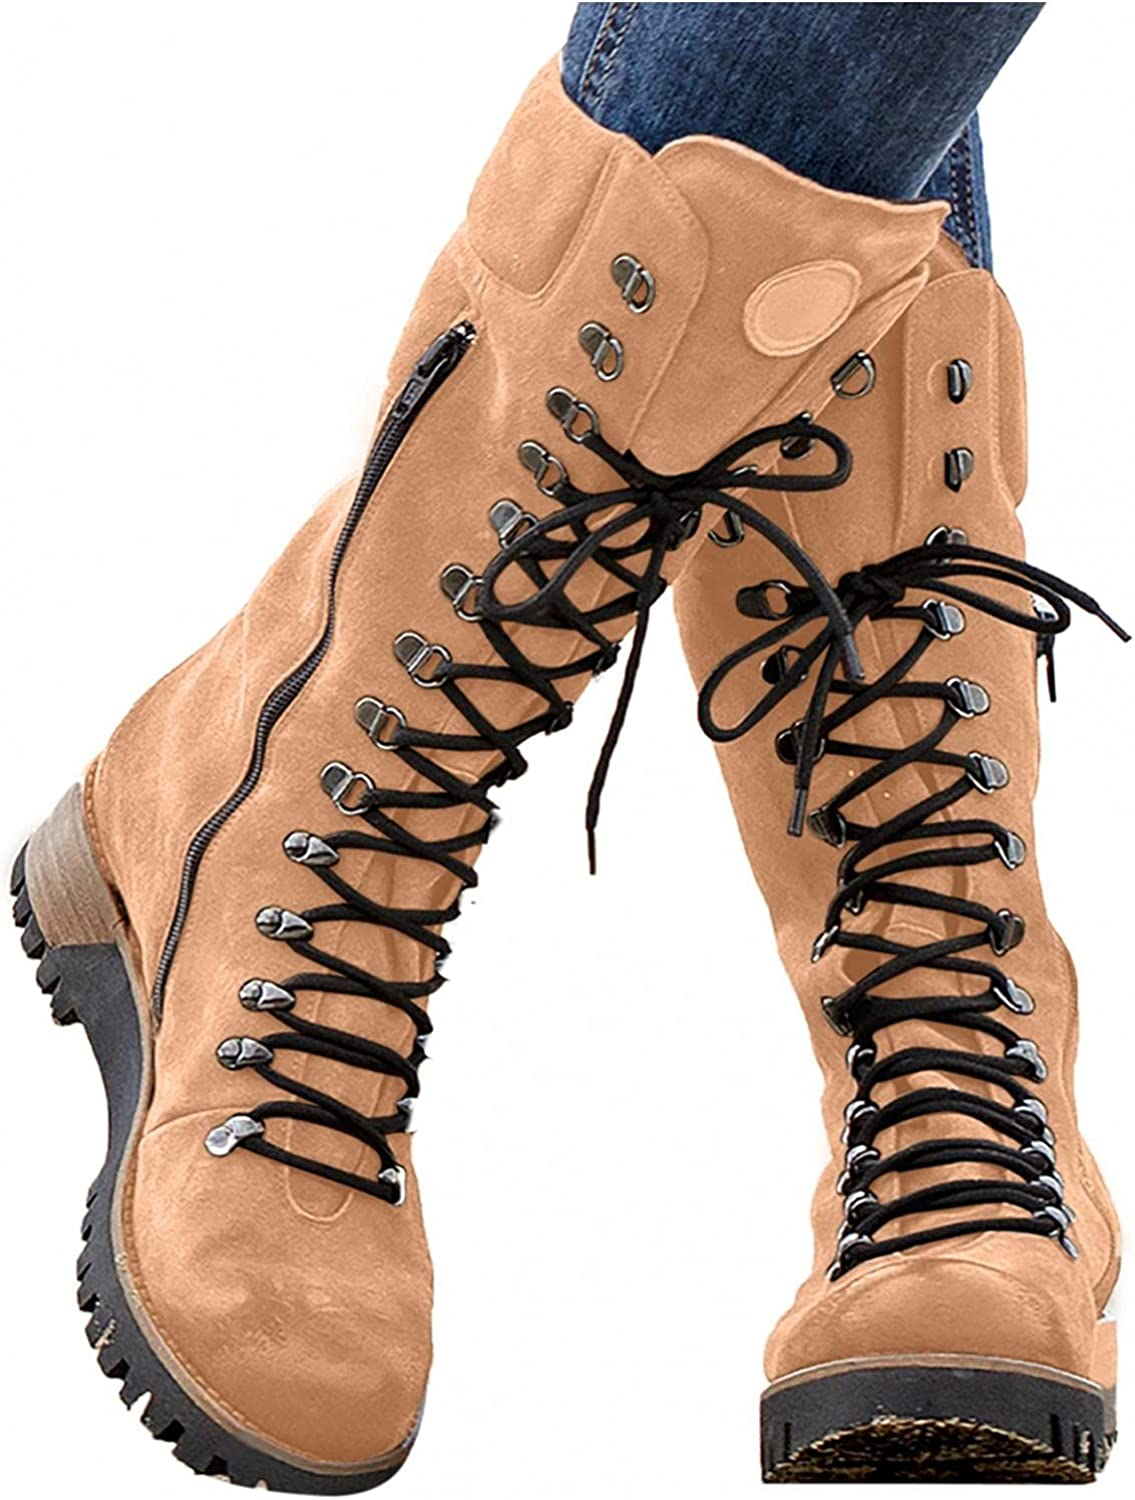 Hbeylia Platform Combat Boots For Women Fashion Vintage Punk Lace Up Mid Calf Boots With Side Zip Retro Wedge Chunky Mid Heels Cowboys Motorcycle Knight Riding Tall Boots For Ladies Winter Shoes